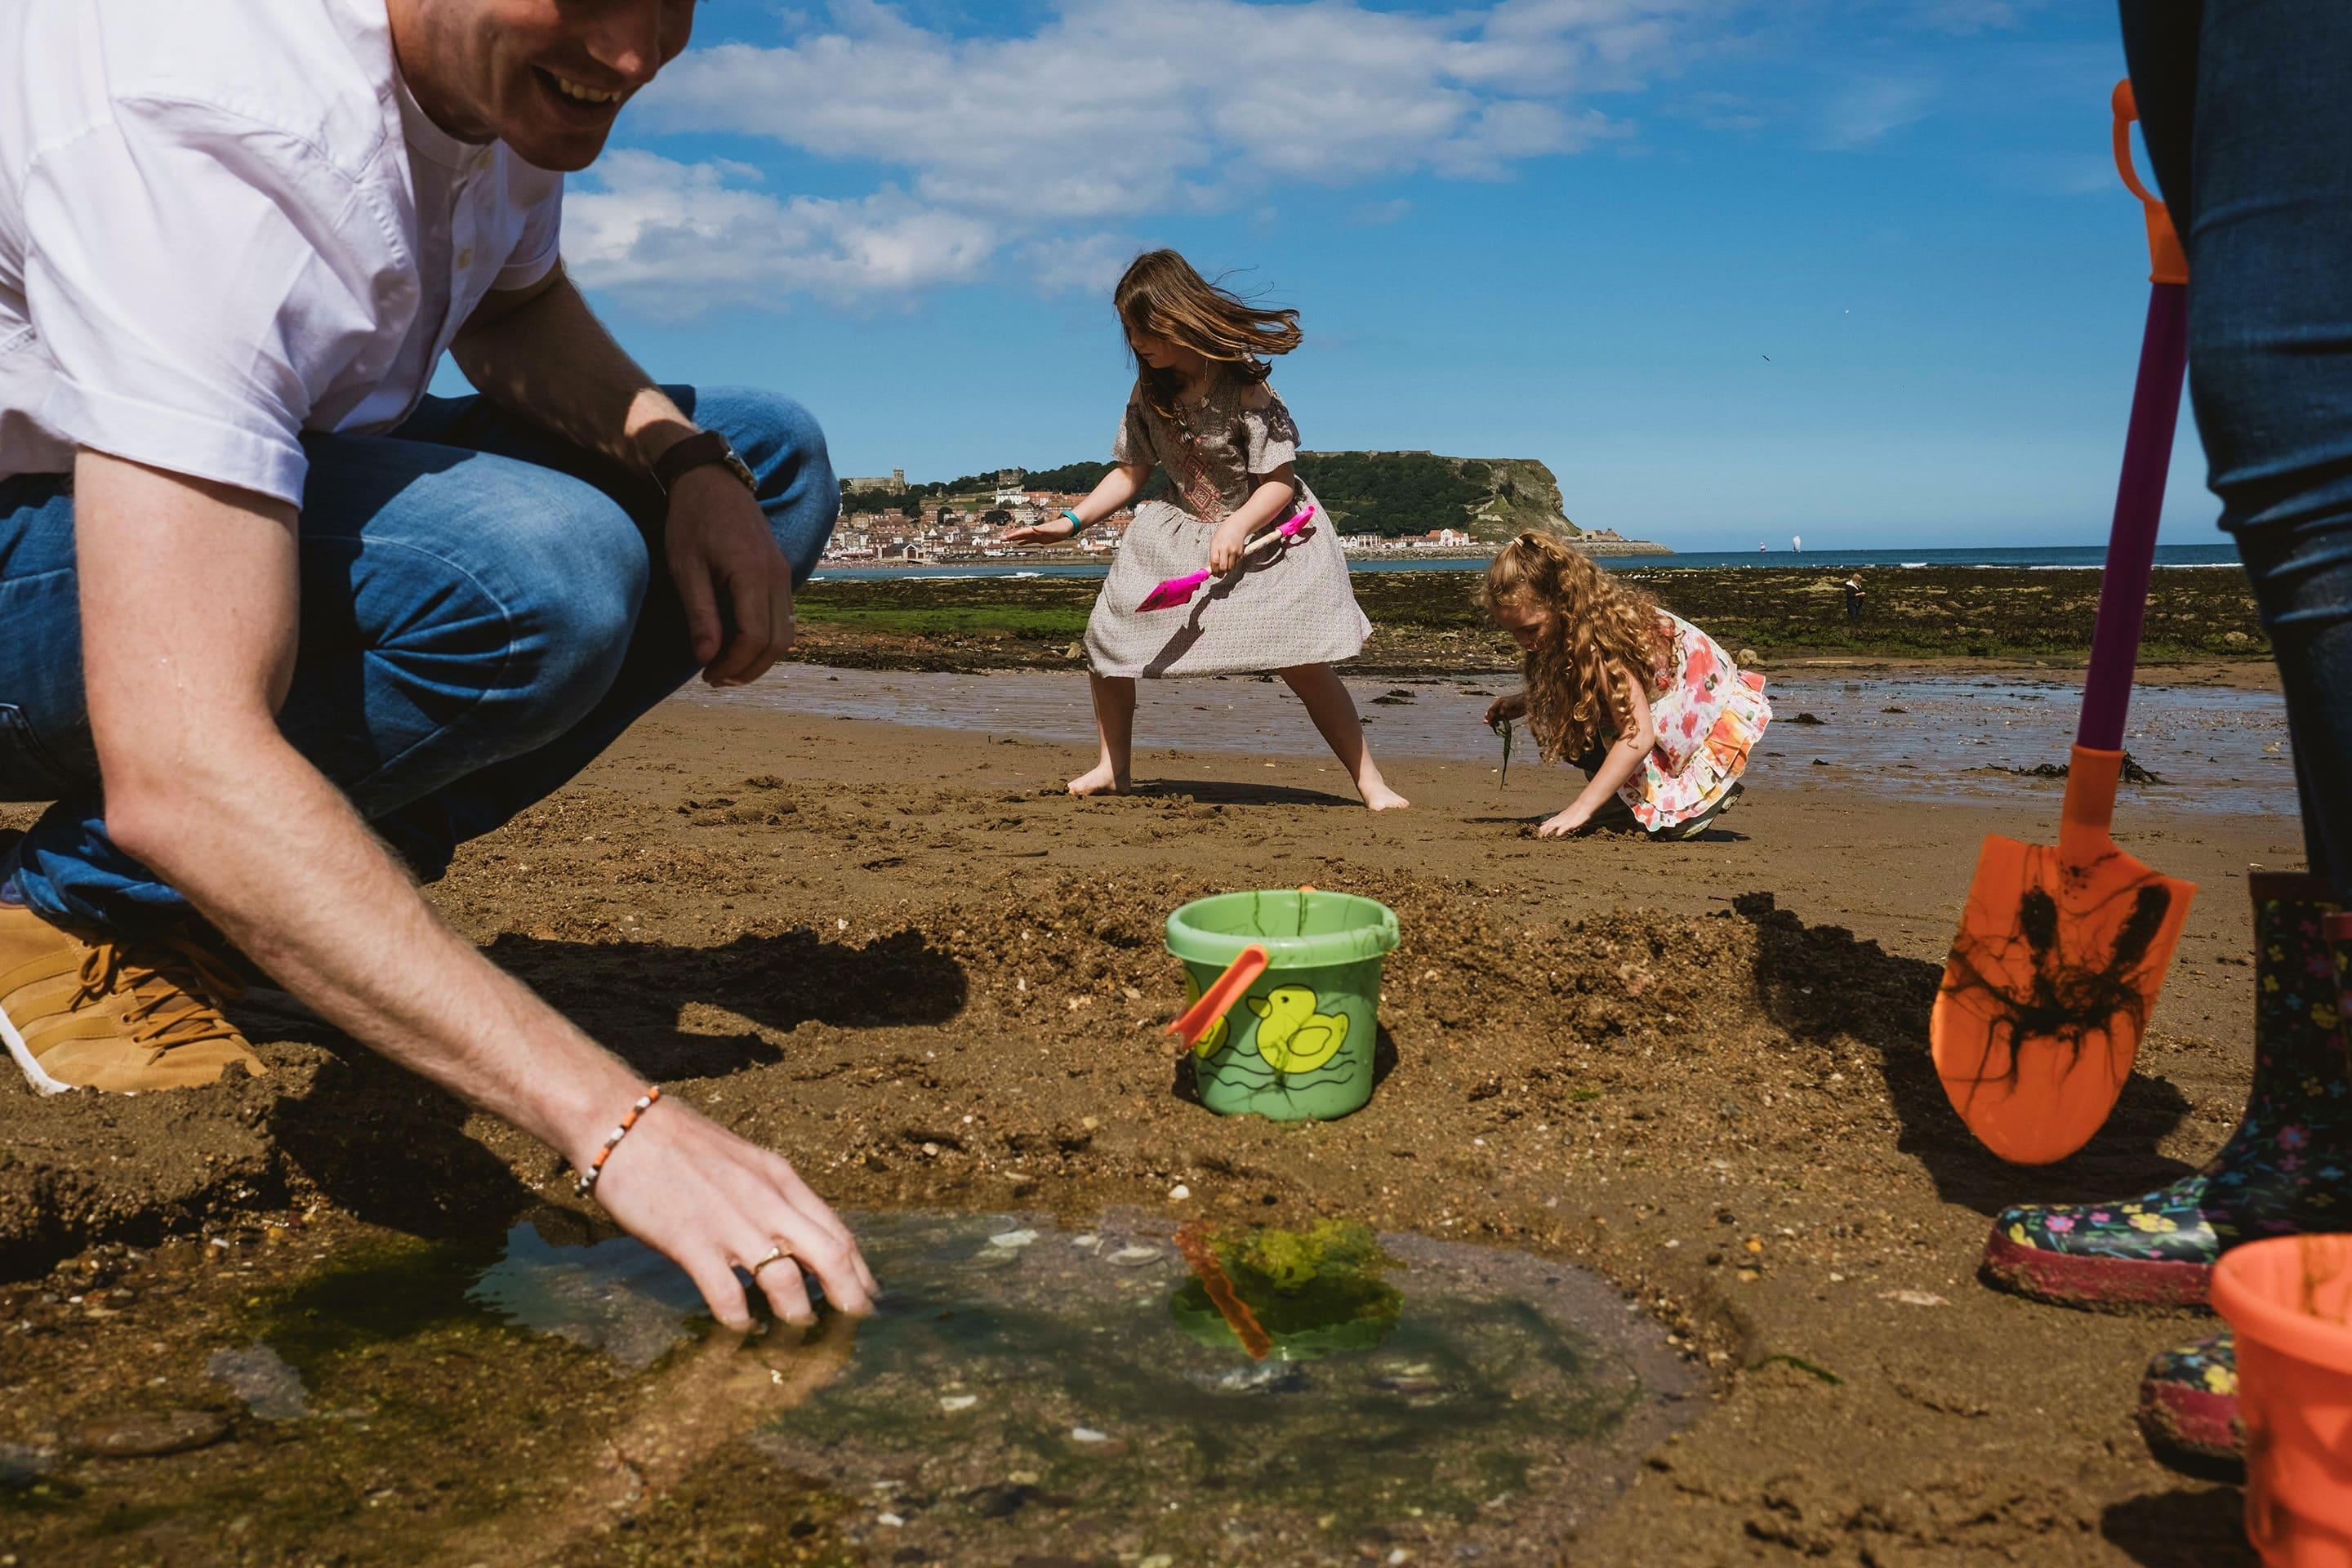 Family Day Out photography on a beach by York Place. A Man is crouched down looking in a rock pool on the left of the image. Next to him is a bucket and opposite someone wearing wellington boots is standing holding a spade with a crab painted on it. In the centre of the frame in the background two girls are playing.